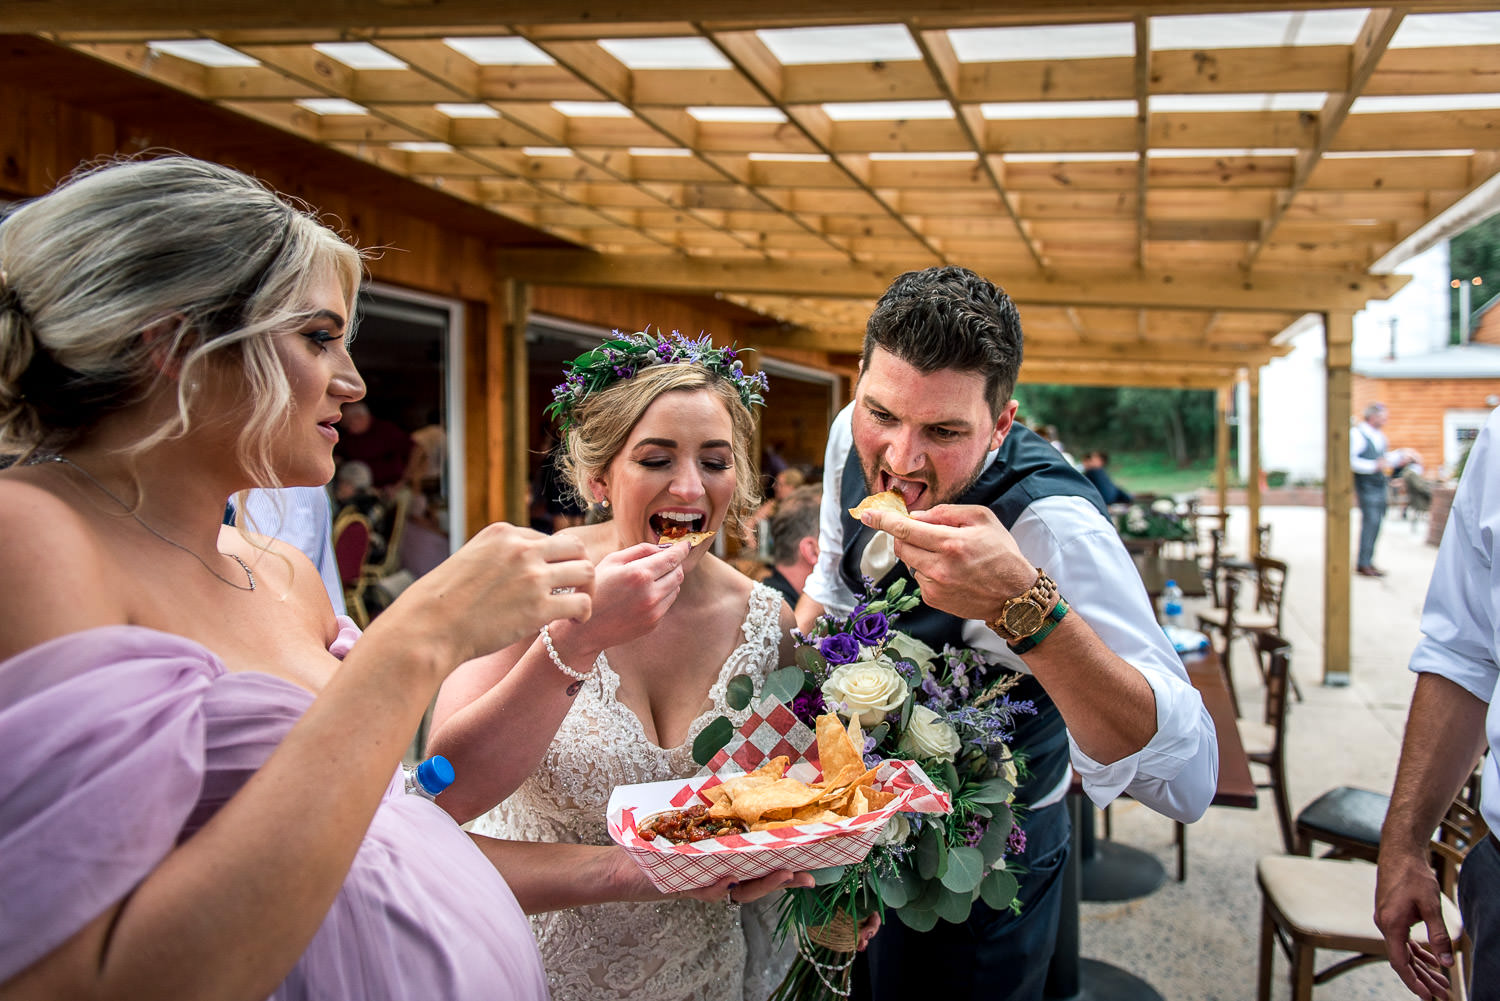 Bride and groom eat nachos for the food truck at their wedding reception